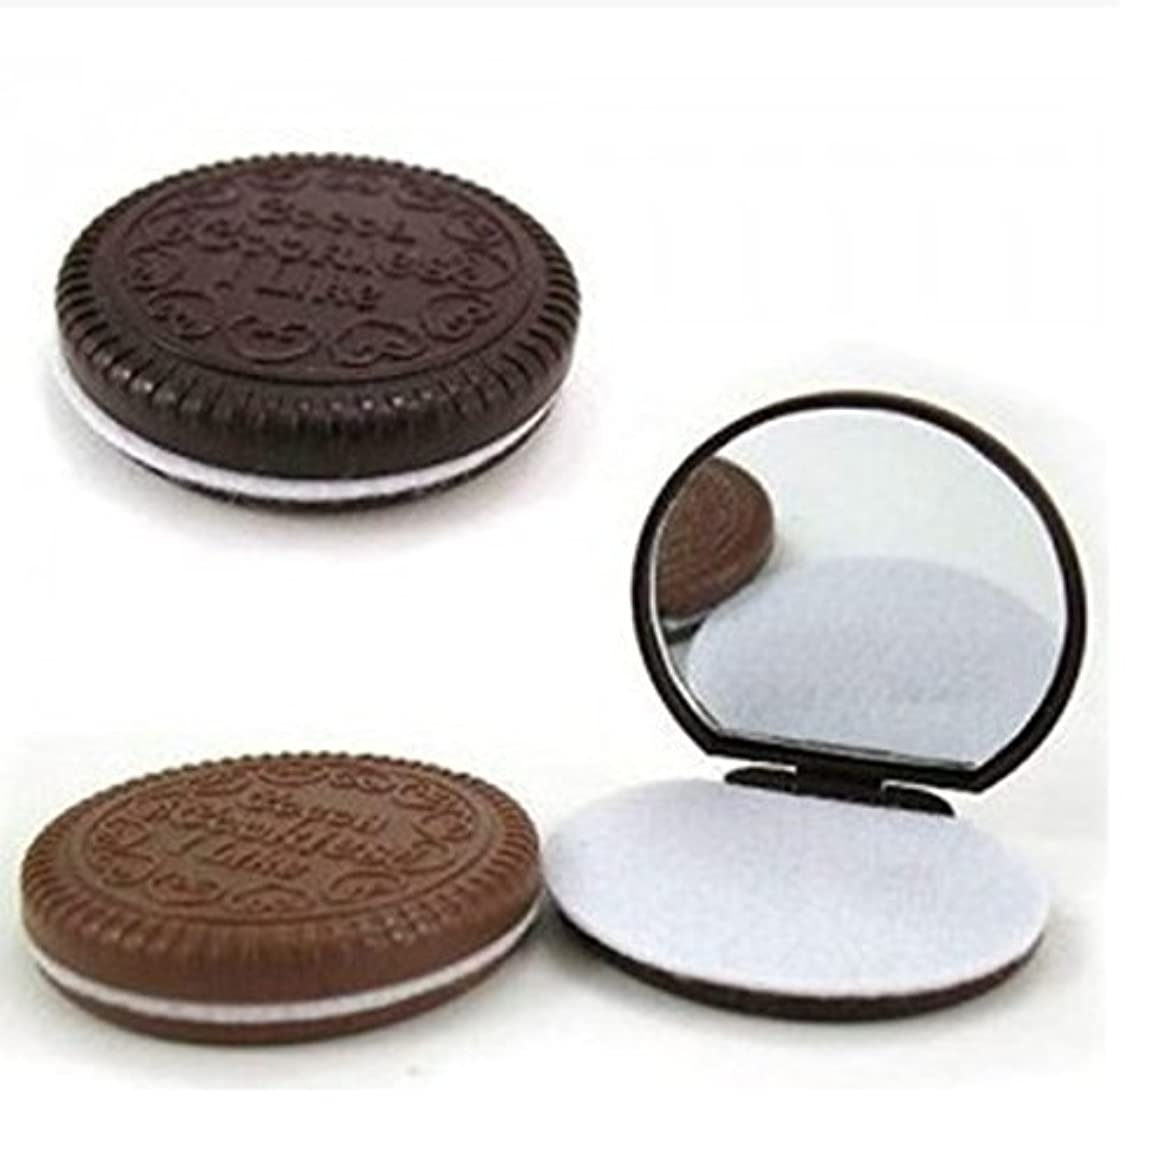 十分です二層成分3 Pcs Cute Chocolate Makeup Mirror With Comb Women Hand Pocket Compact Makeup Tools Great Gift [並行輸入品]